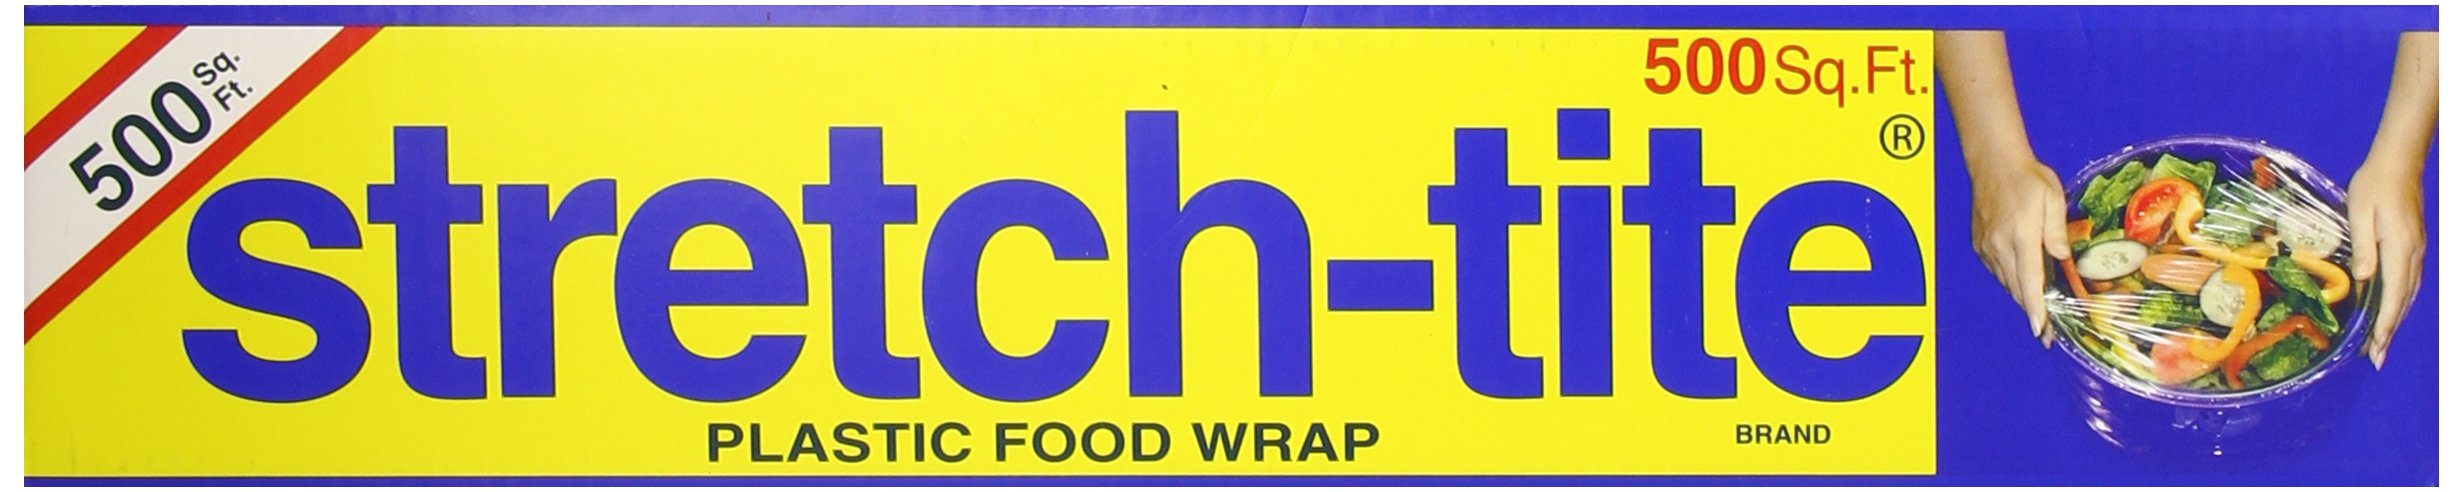 Stretch-Tite Premium Plastic Food Wrap, 500 Sq. Ft., 516.12-Ft. x 11.5/8-Inch